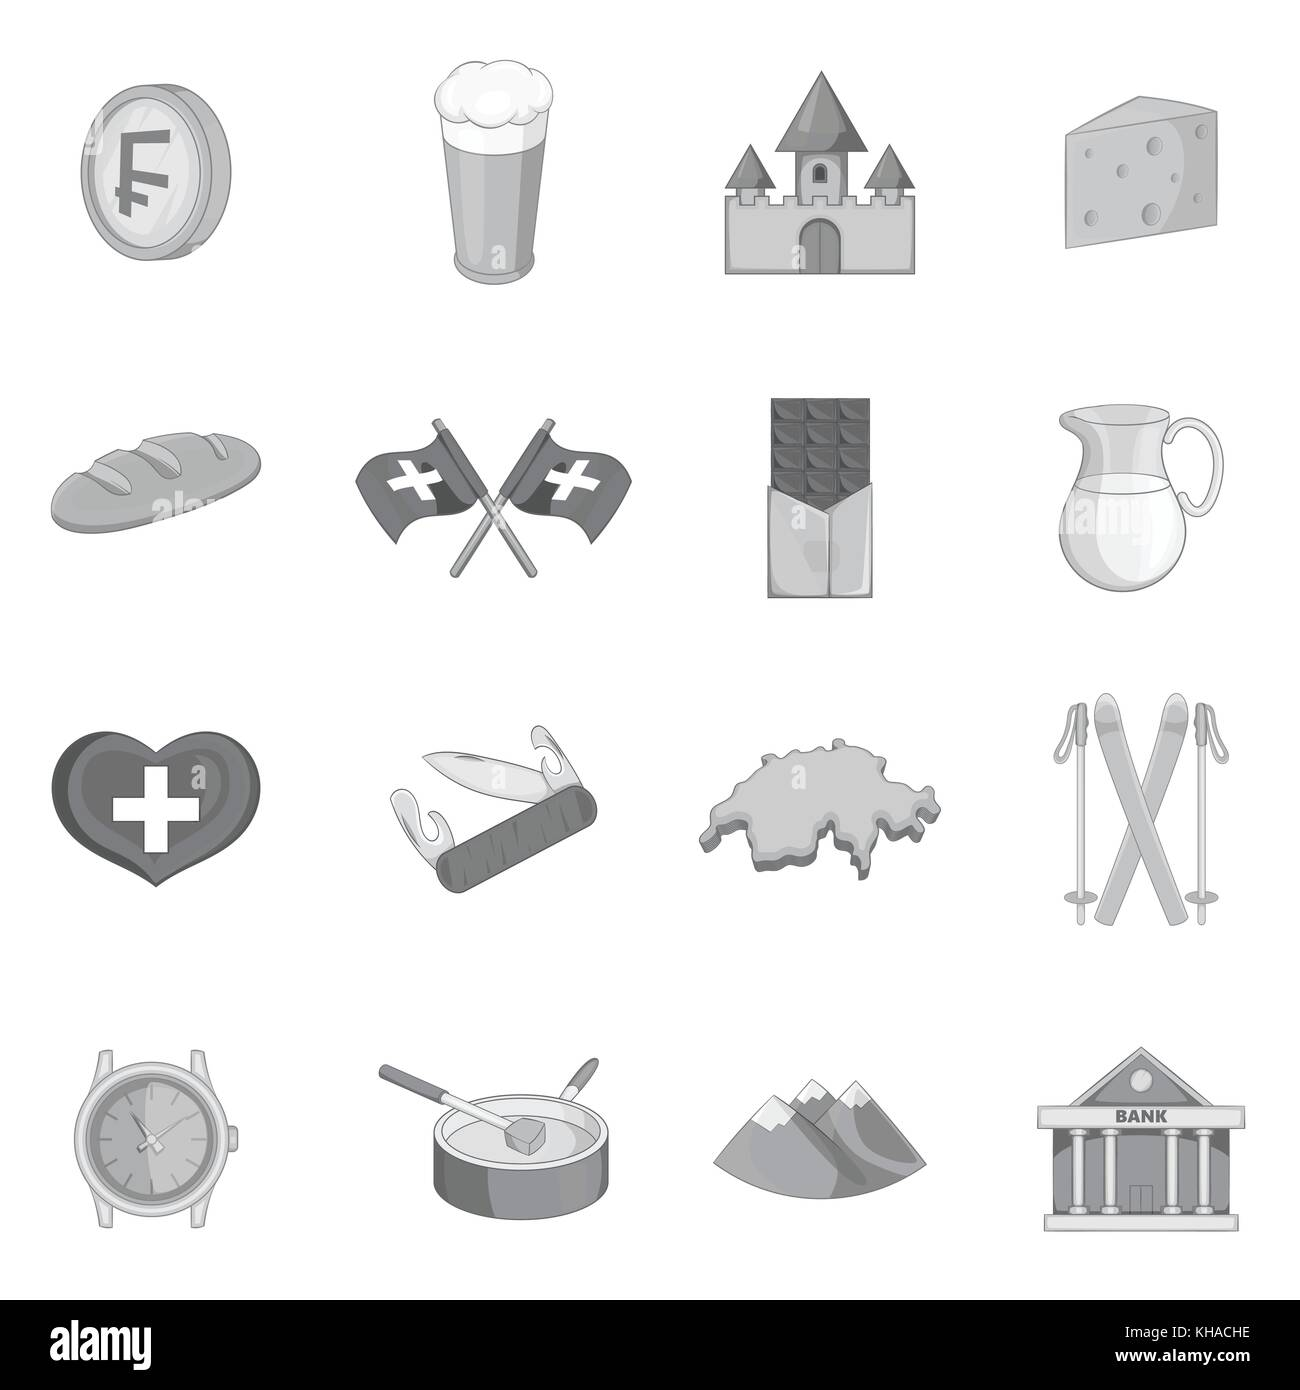 Switzerland travel icons set, monochrome style - Stock Image